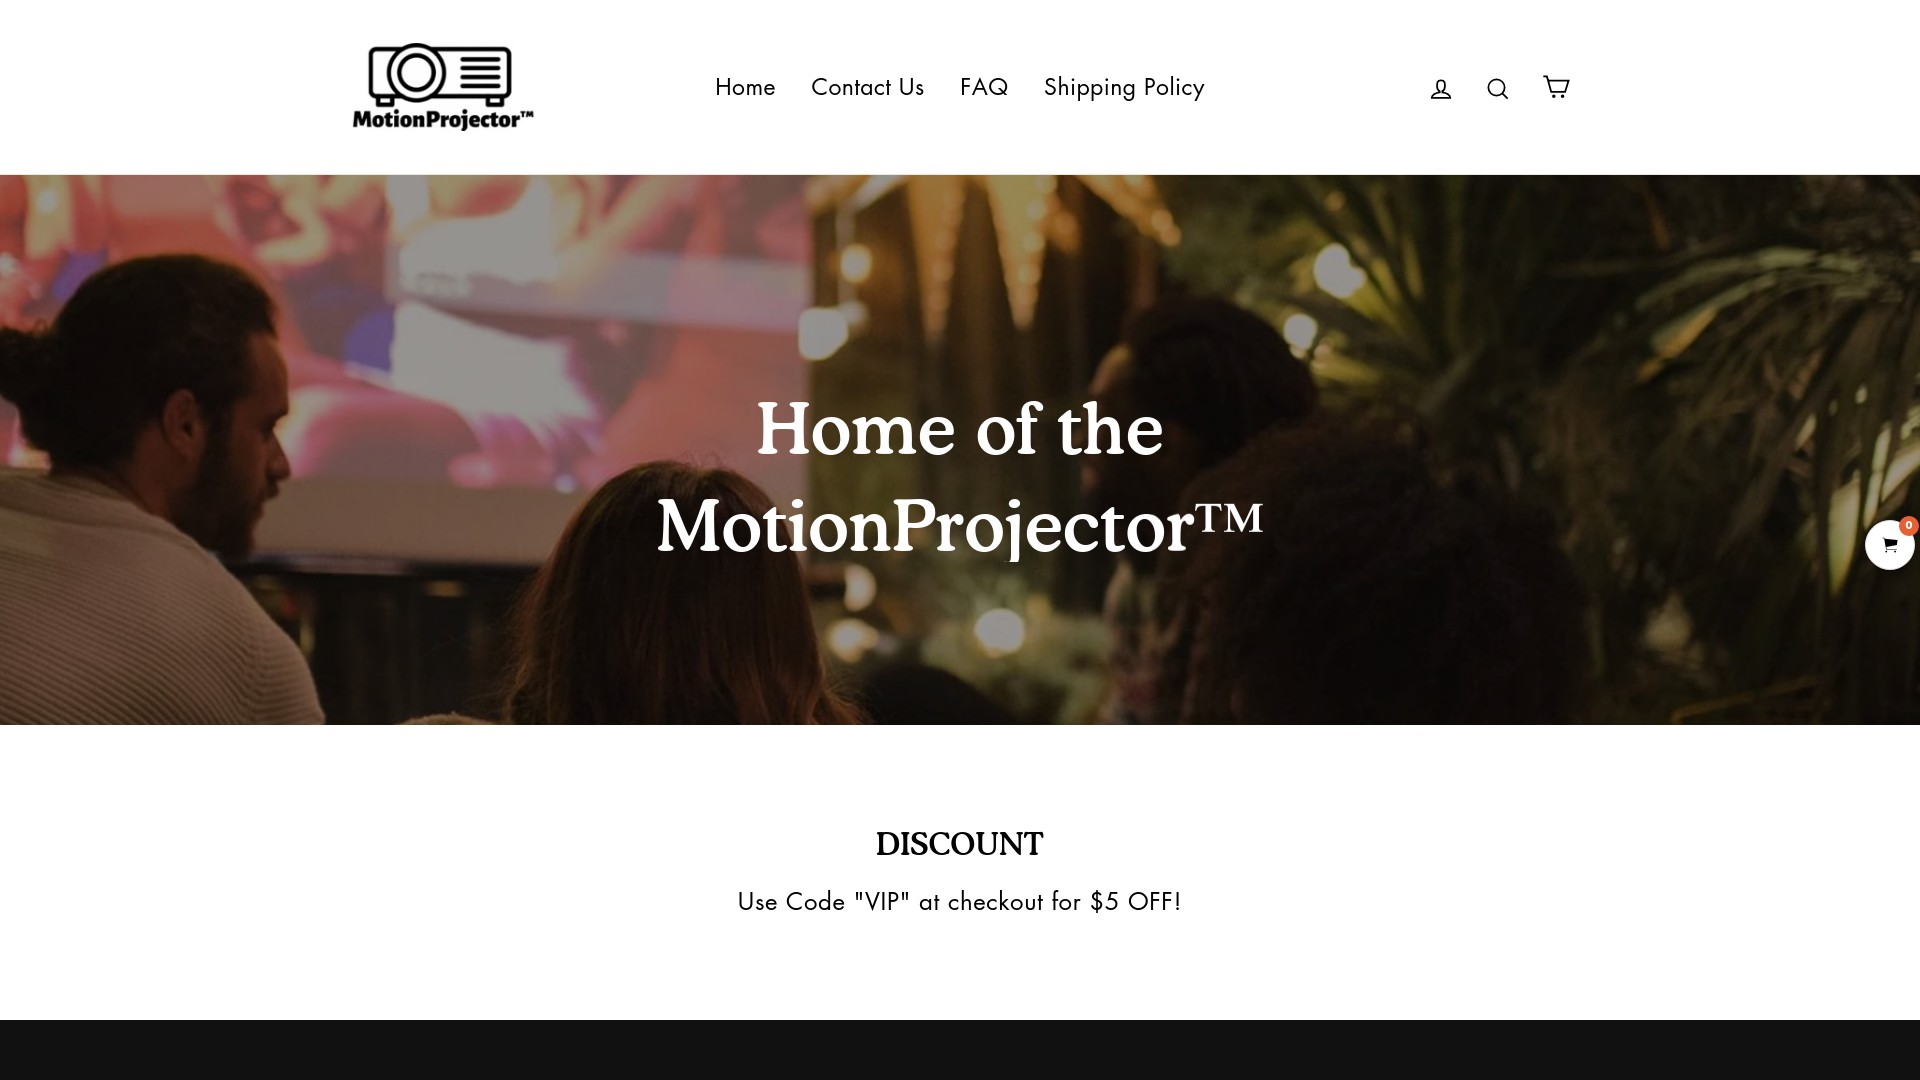 Is Motionprojector a Scam? See the Review of the Online Store